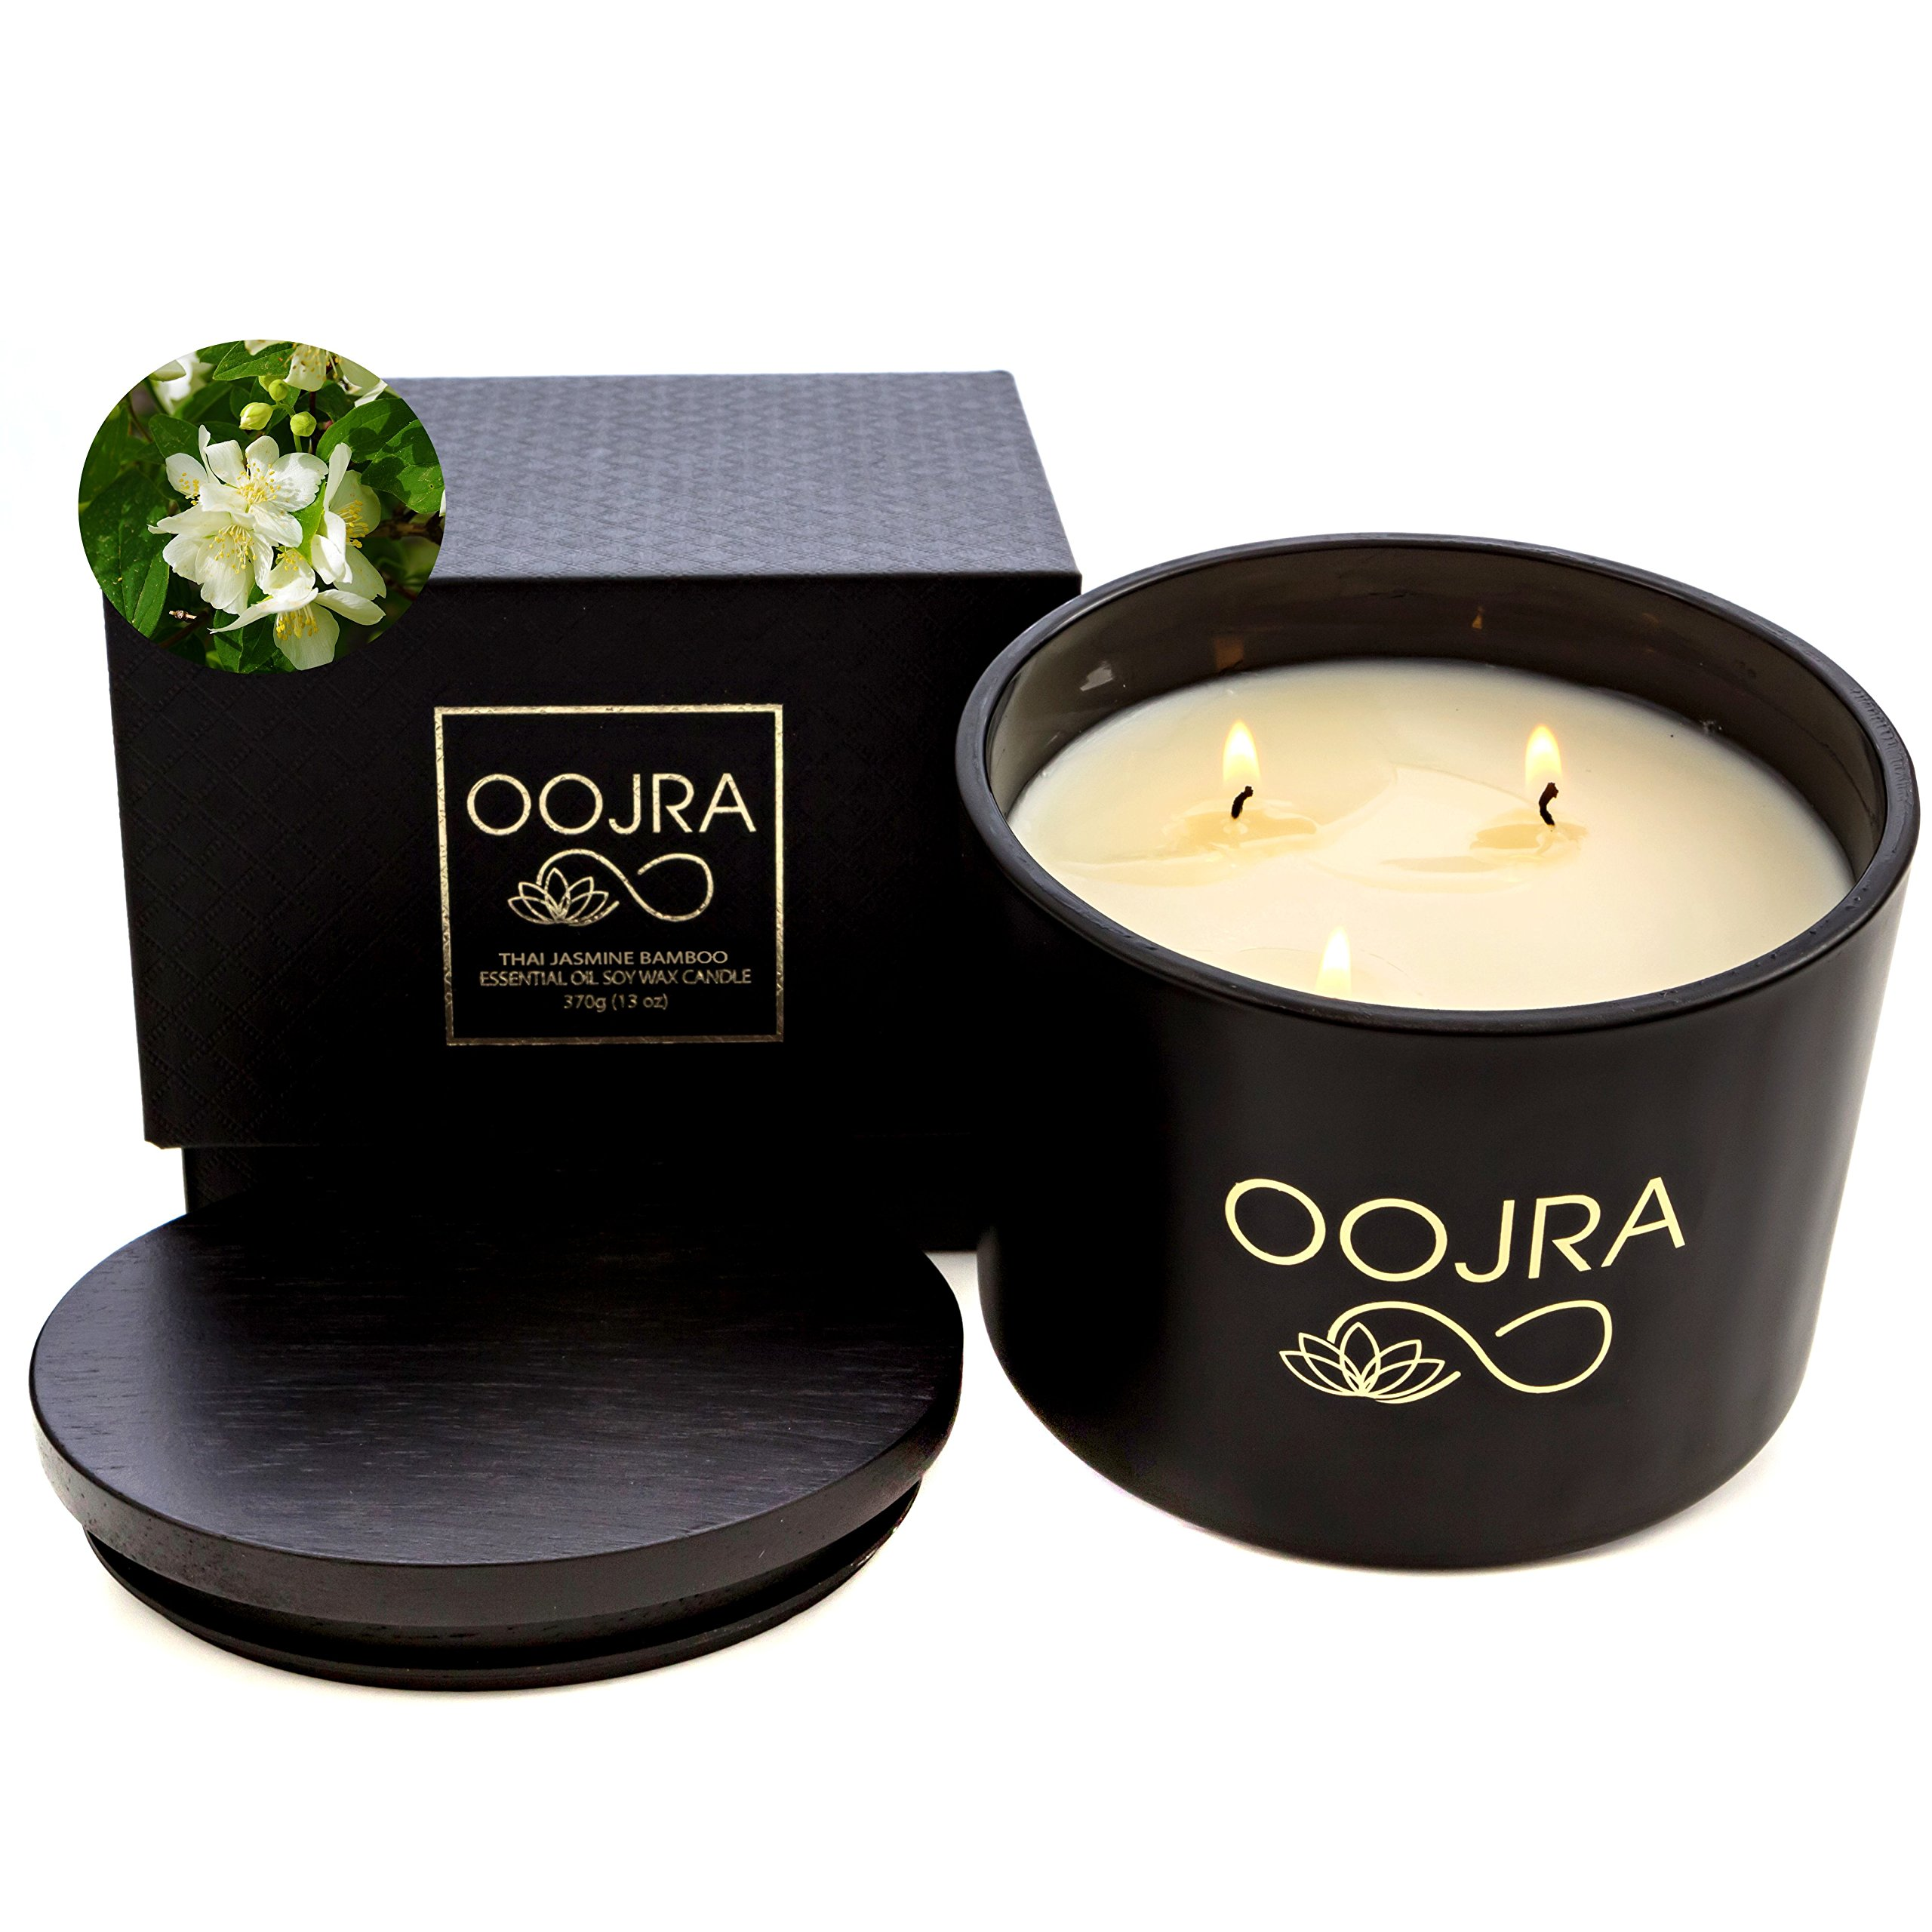 OOJRA Essential Oil Thai Jasmine Bamboo Scented Soy Wax Luxury Candle 3 Wick 13 oz (370g) 75+ hours with Lid and Gift Box by OOJRA